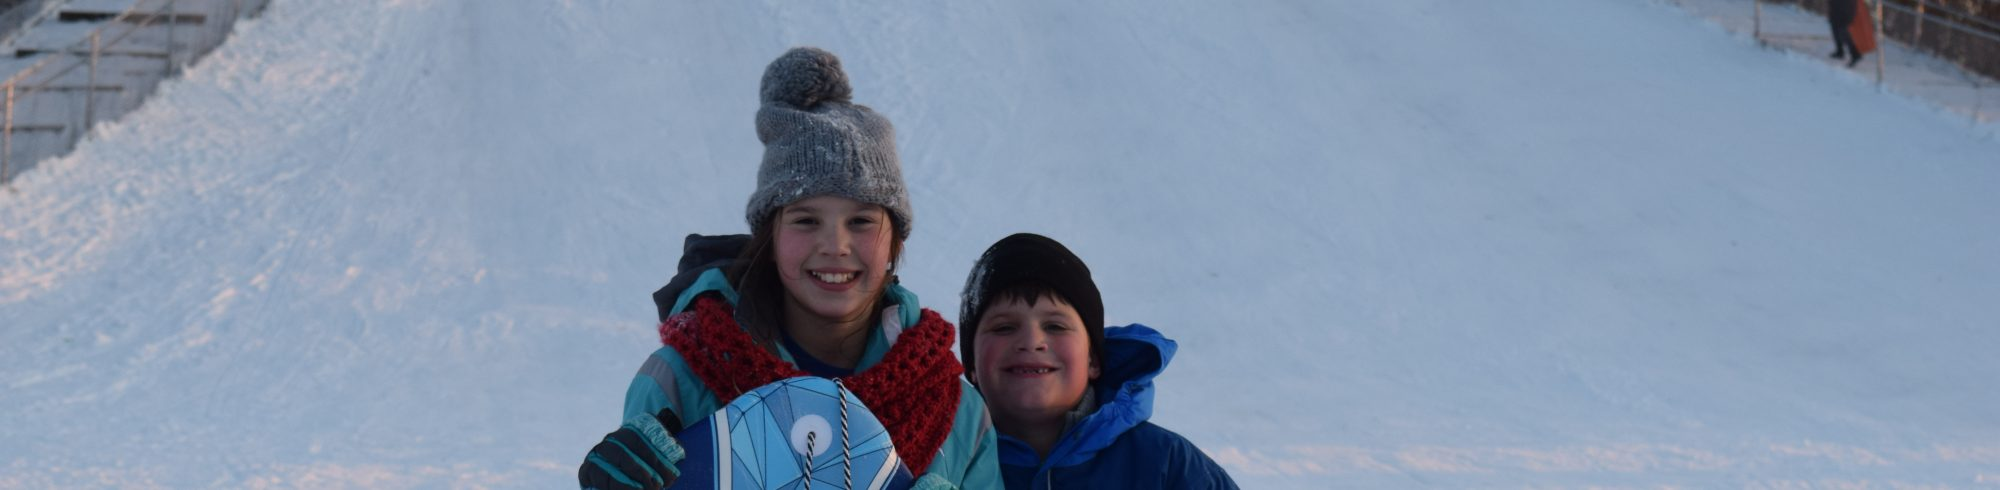 kids on sled hill